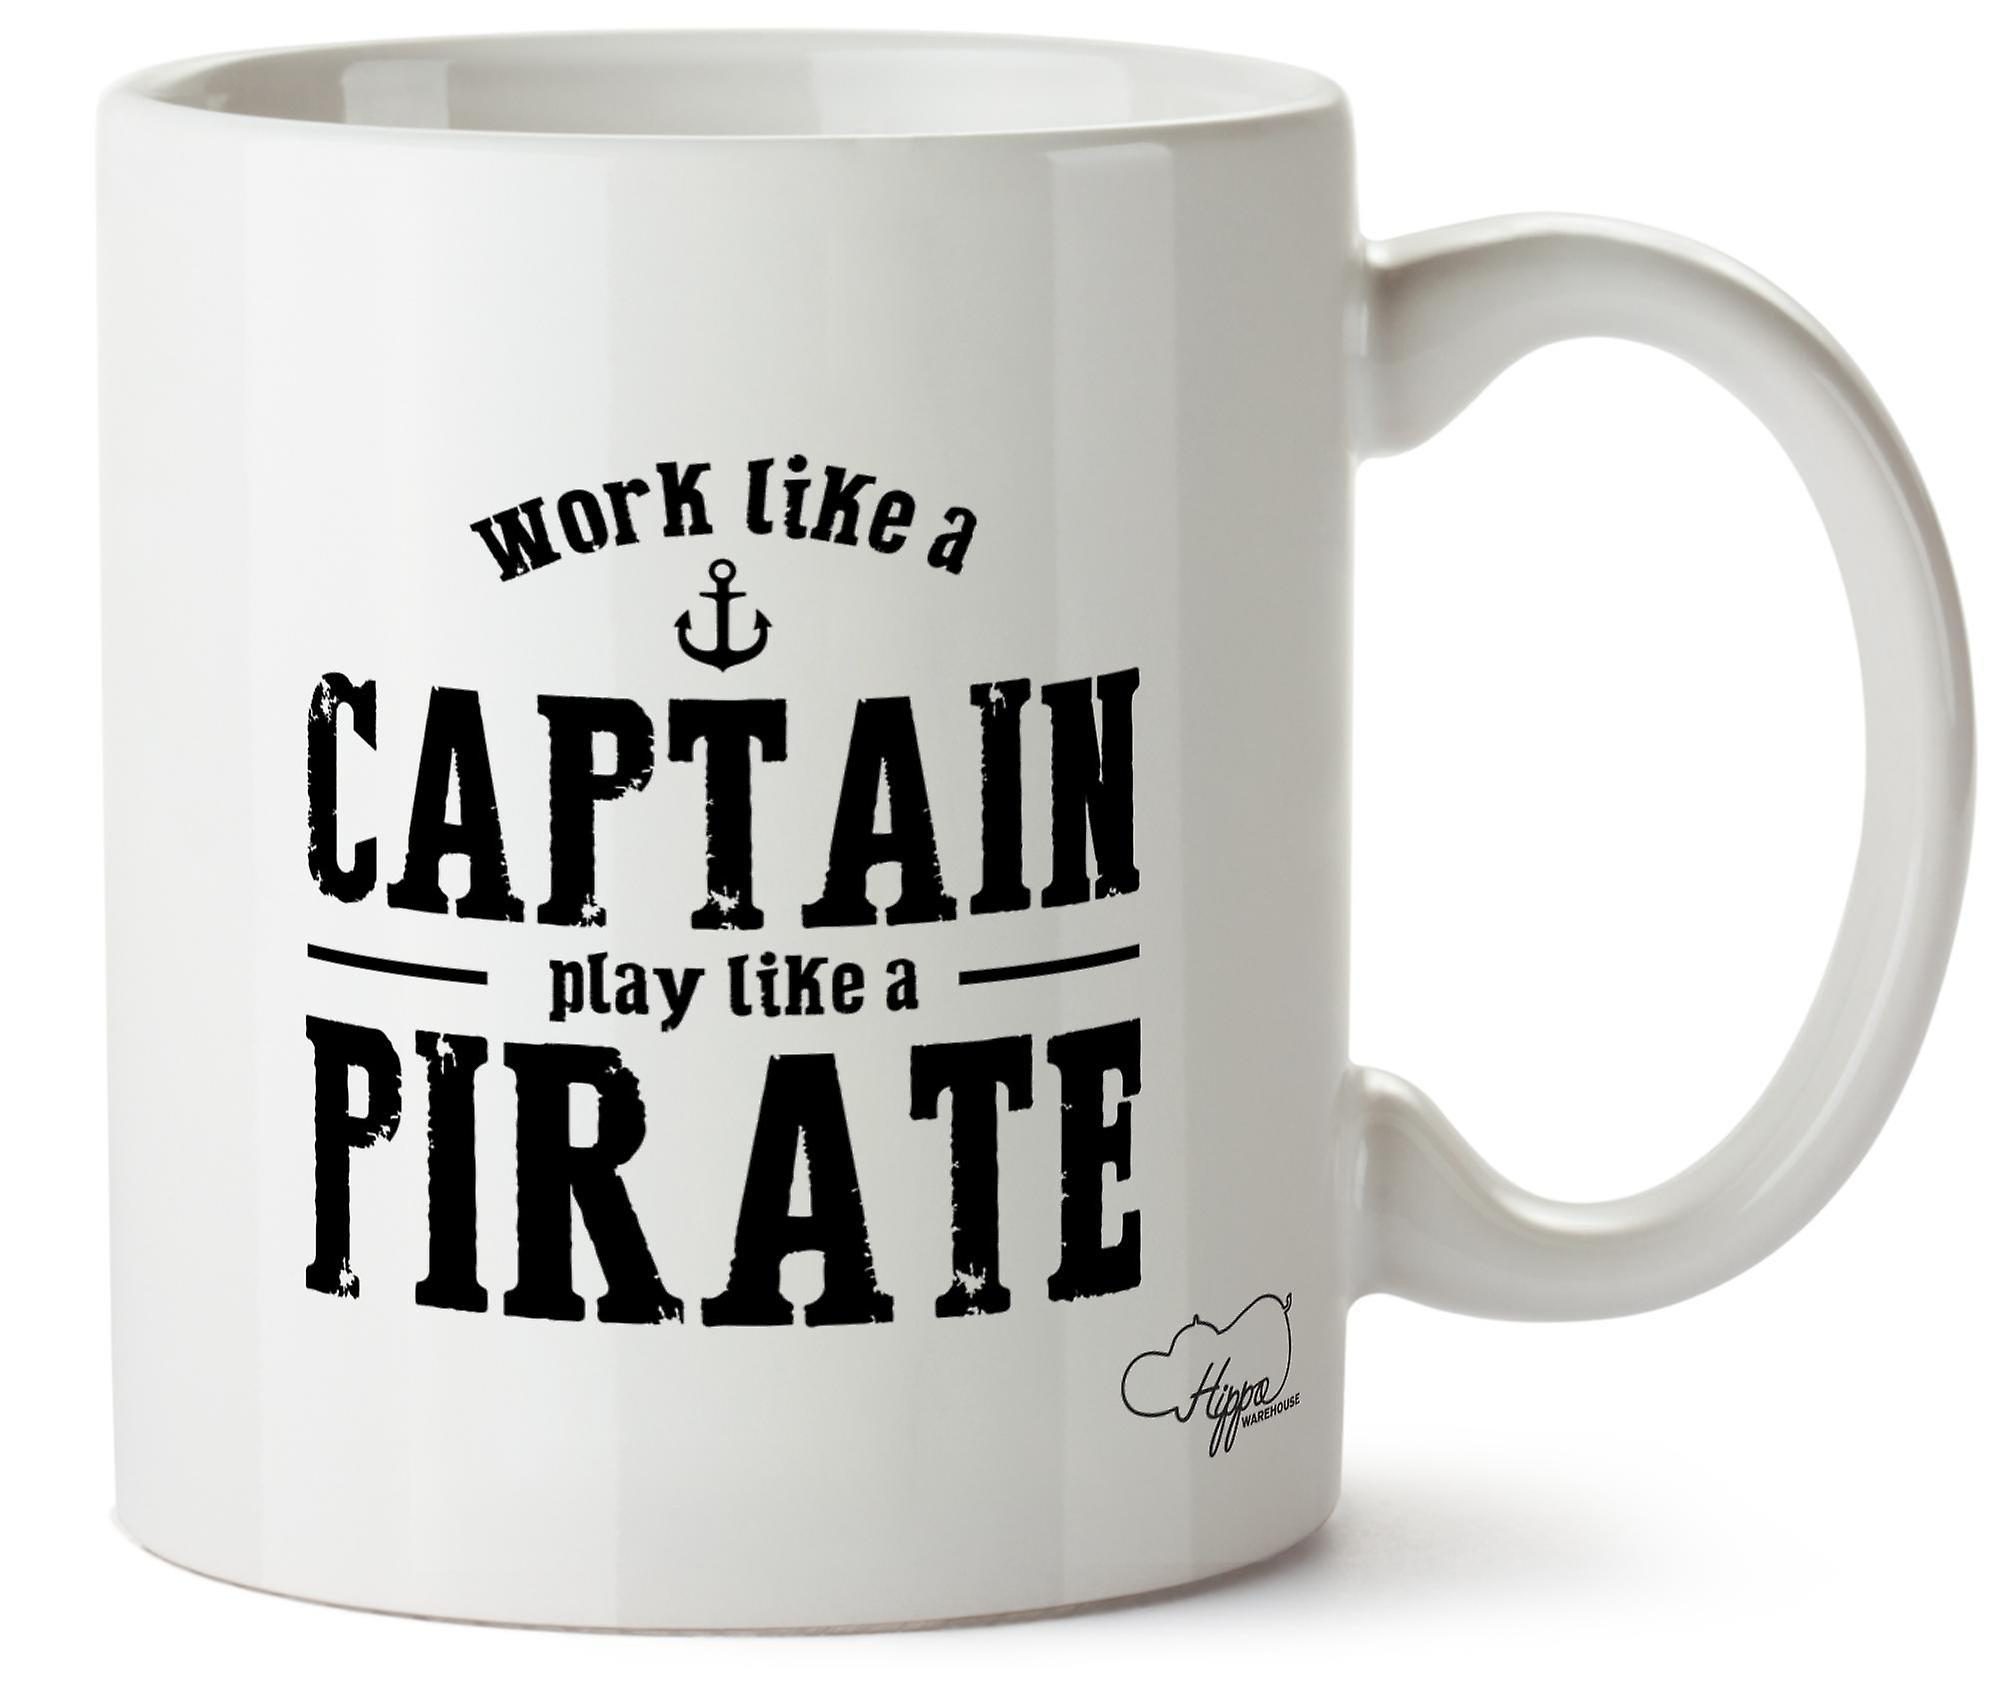 Hippowarehouse Travail Tasse Pirate Comme Un Capitaine A Cup Play 10 Oz Like htrsQd